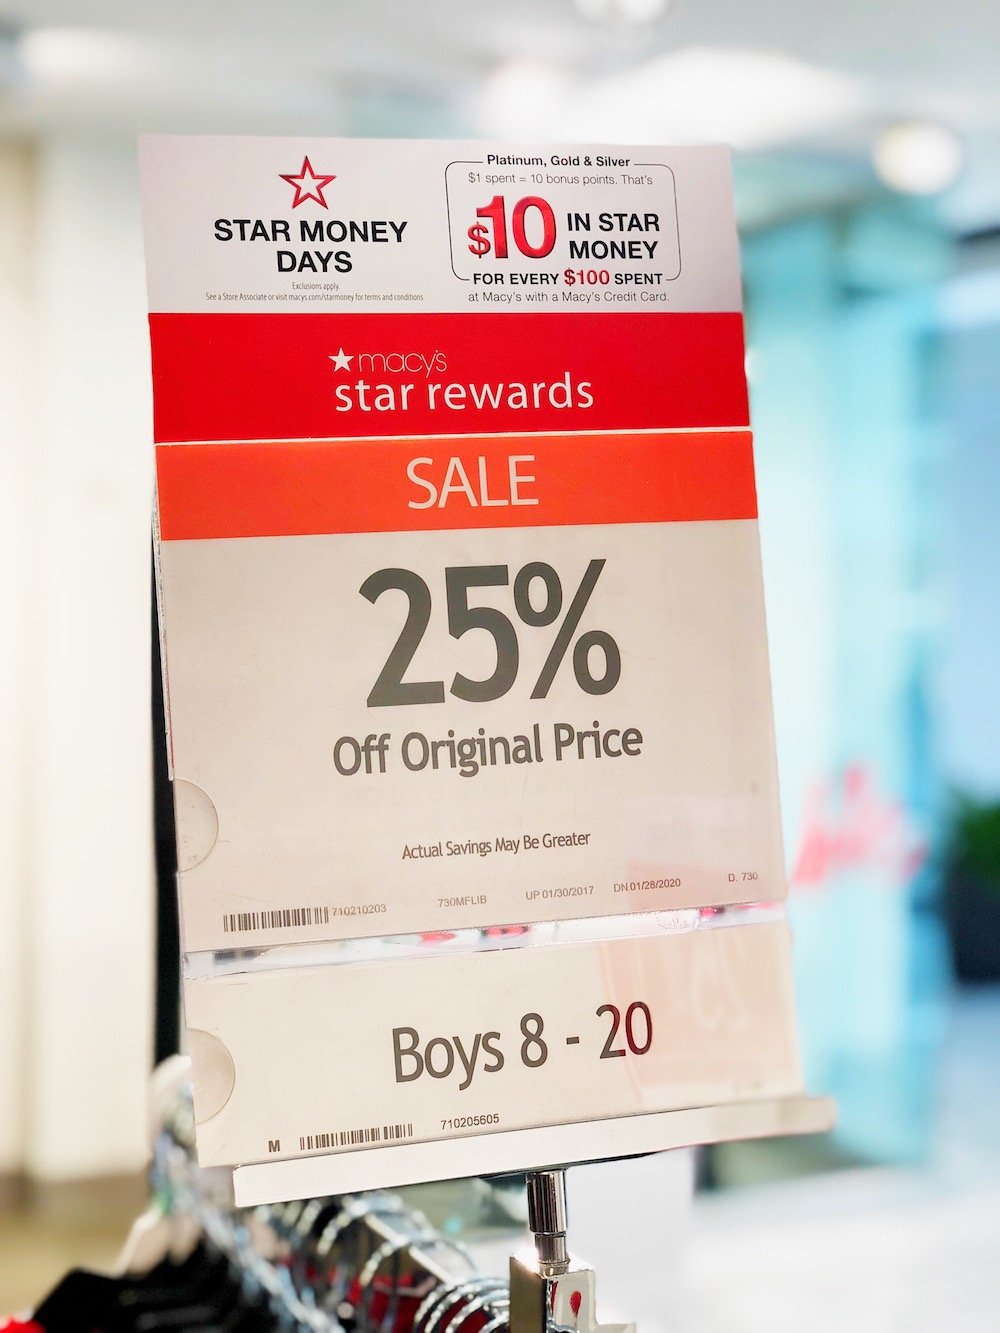 Macy's star rewards saves you even more at Macy's at MainPlace Mall in Santa Ana | livingmividaloca.com | #livingmividaloca #shopmainplace #santaana #mainplacemall #macys #kidstyle #sportystyle